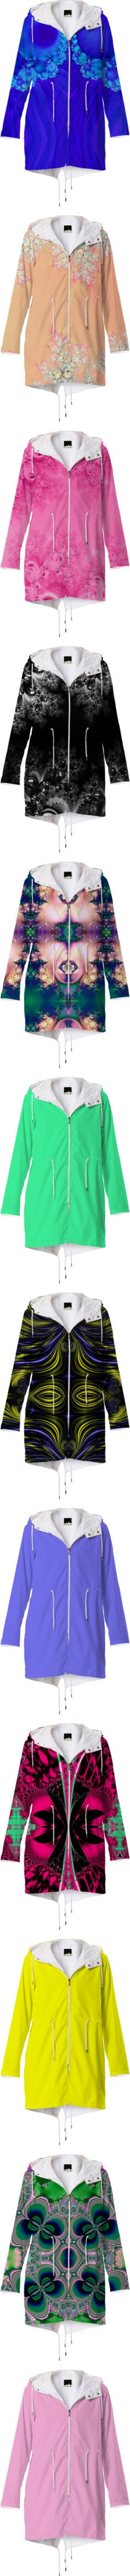 * MY #RAINCOATS FOR SALE * by artist4god-rose-santuci-sofranko on Polyvore featuring polyvore, fashion, clothing, #outerwear, coats, blue raincoat, rain coat, blue coat, abstract, floral, flowers, fractal, hooded coats, hooded raincoat, nylon coat, red coat, hooded rain coat, jackets, raincoat, pink rain coat, pink coat, black raincoat, tops, green top, purple coat, purple rain coat, yellow rain coat, yellow coat, yellow raincoat, butterflies, pink raincoat, purple raincoat, red rain coat…